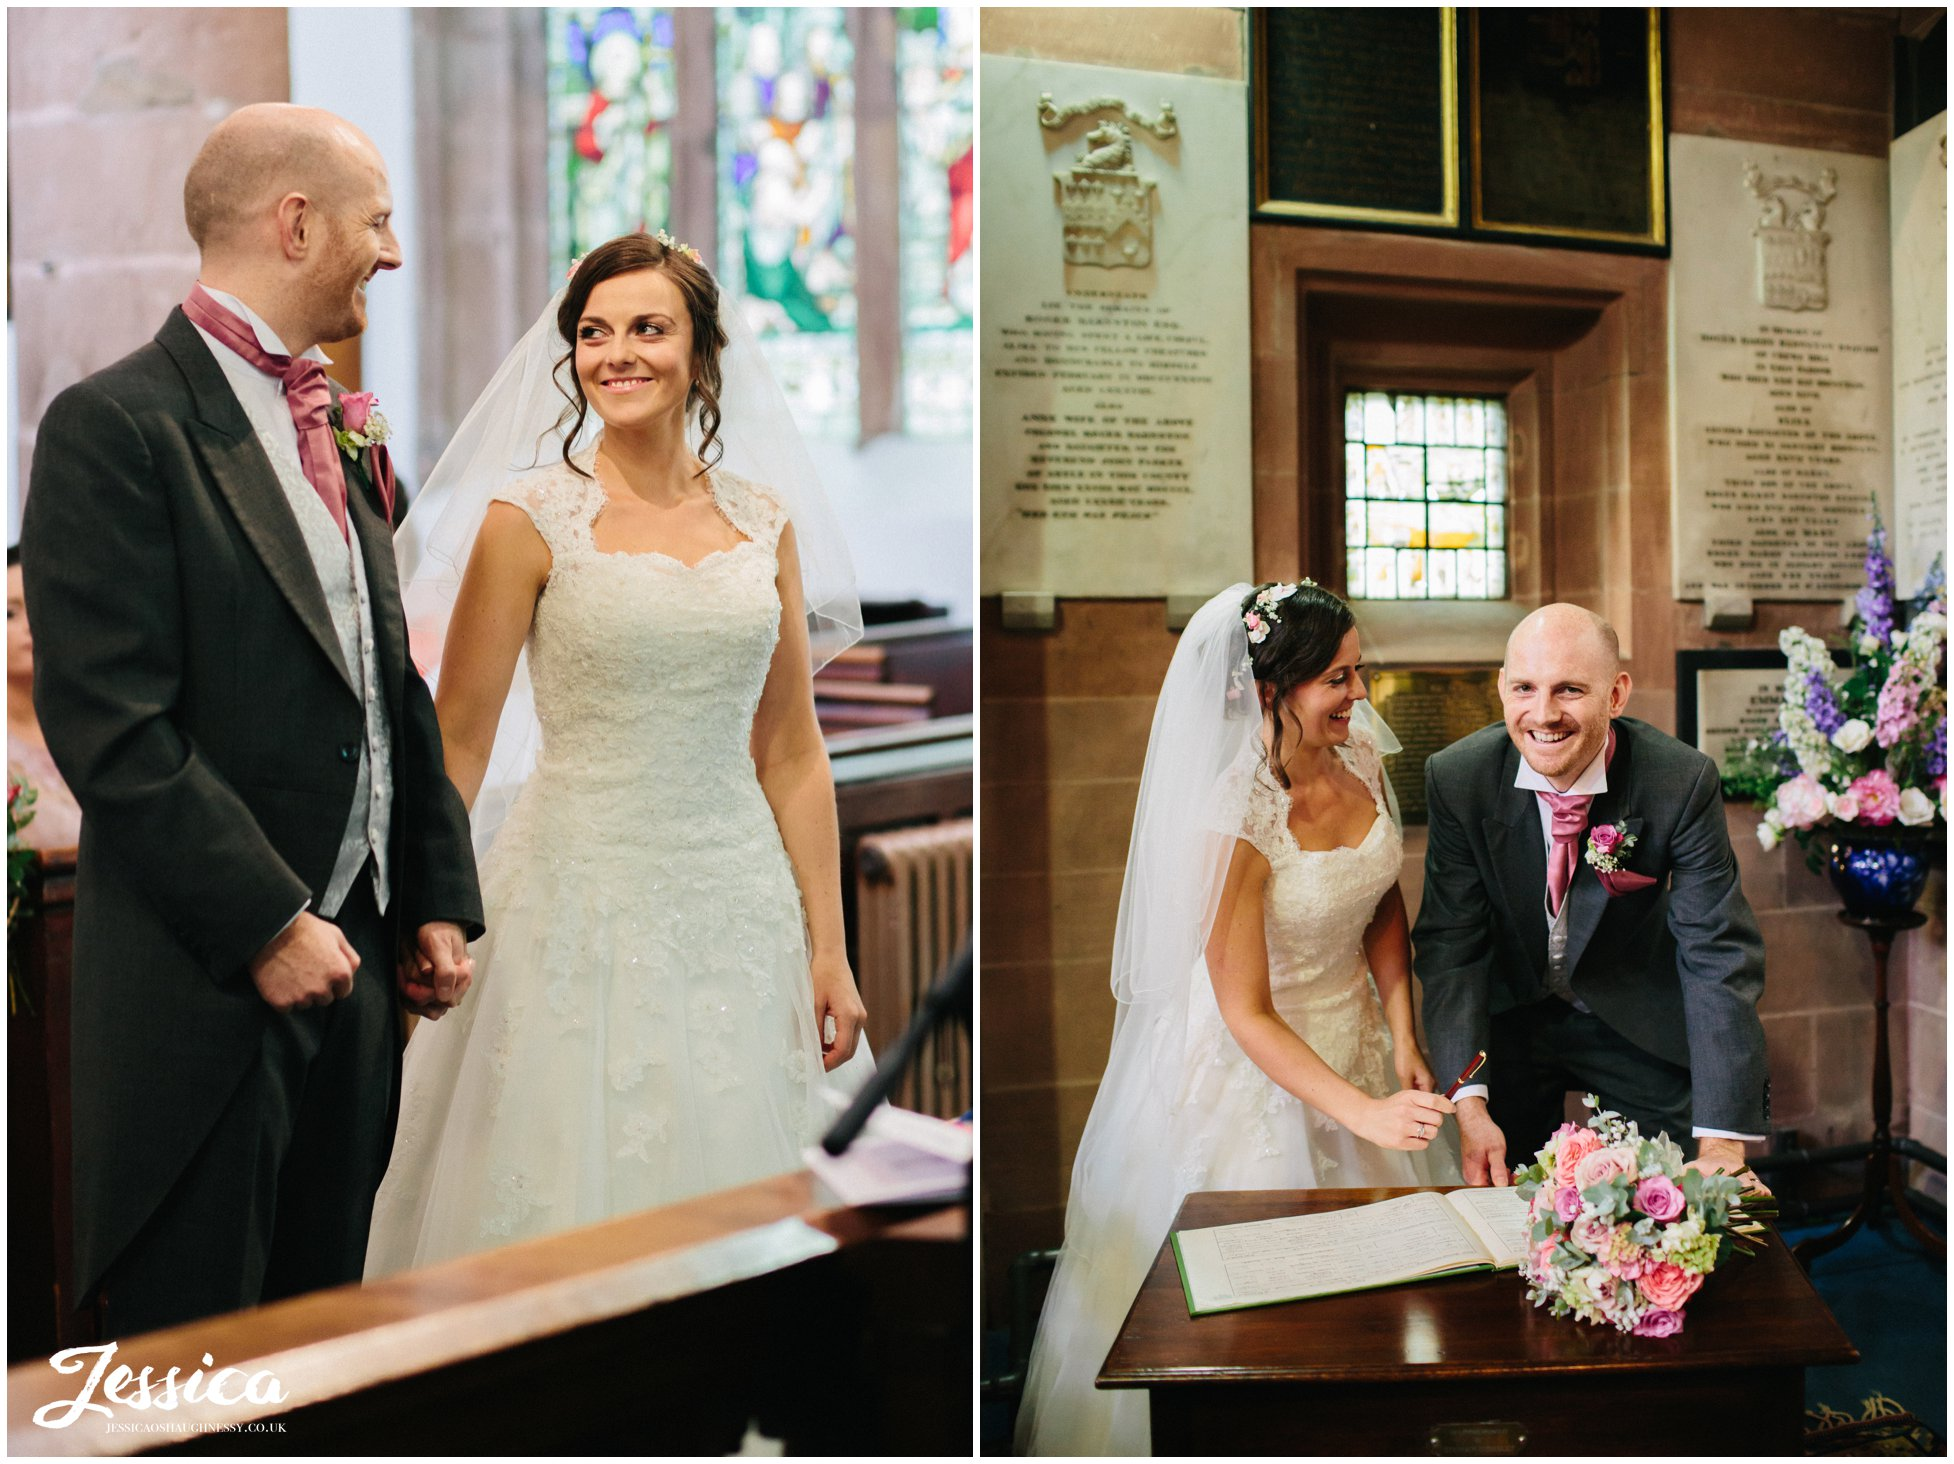 bride & groom during their ceremony at farndon church